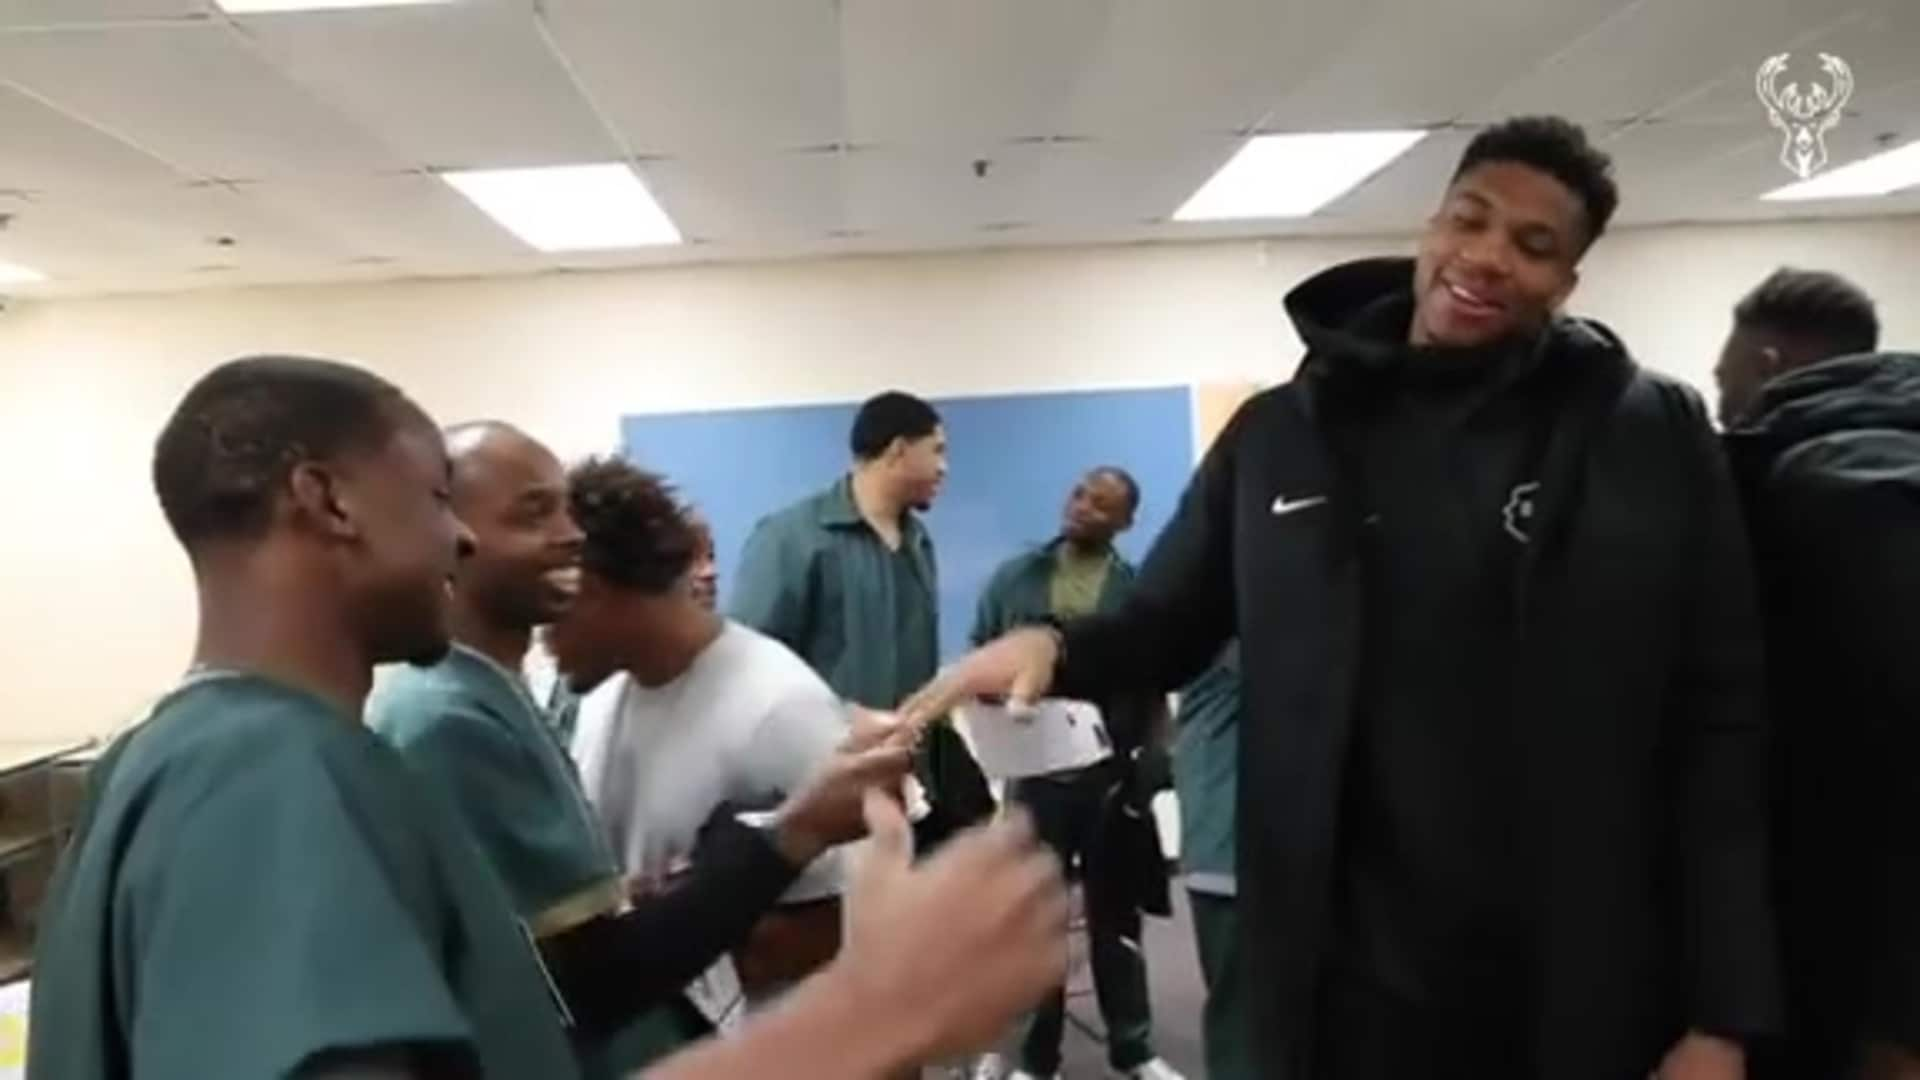 Giannis & Thanasis Deliver Play For Justice Surprise